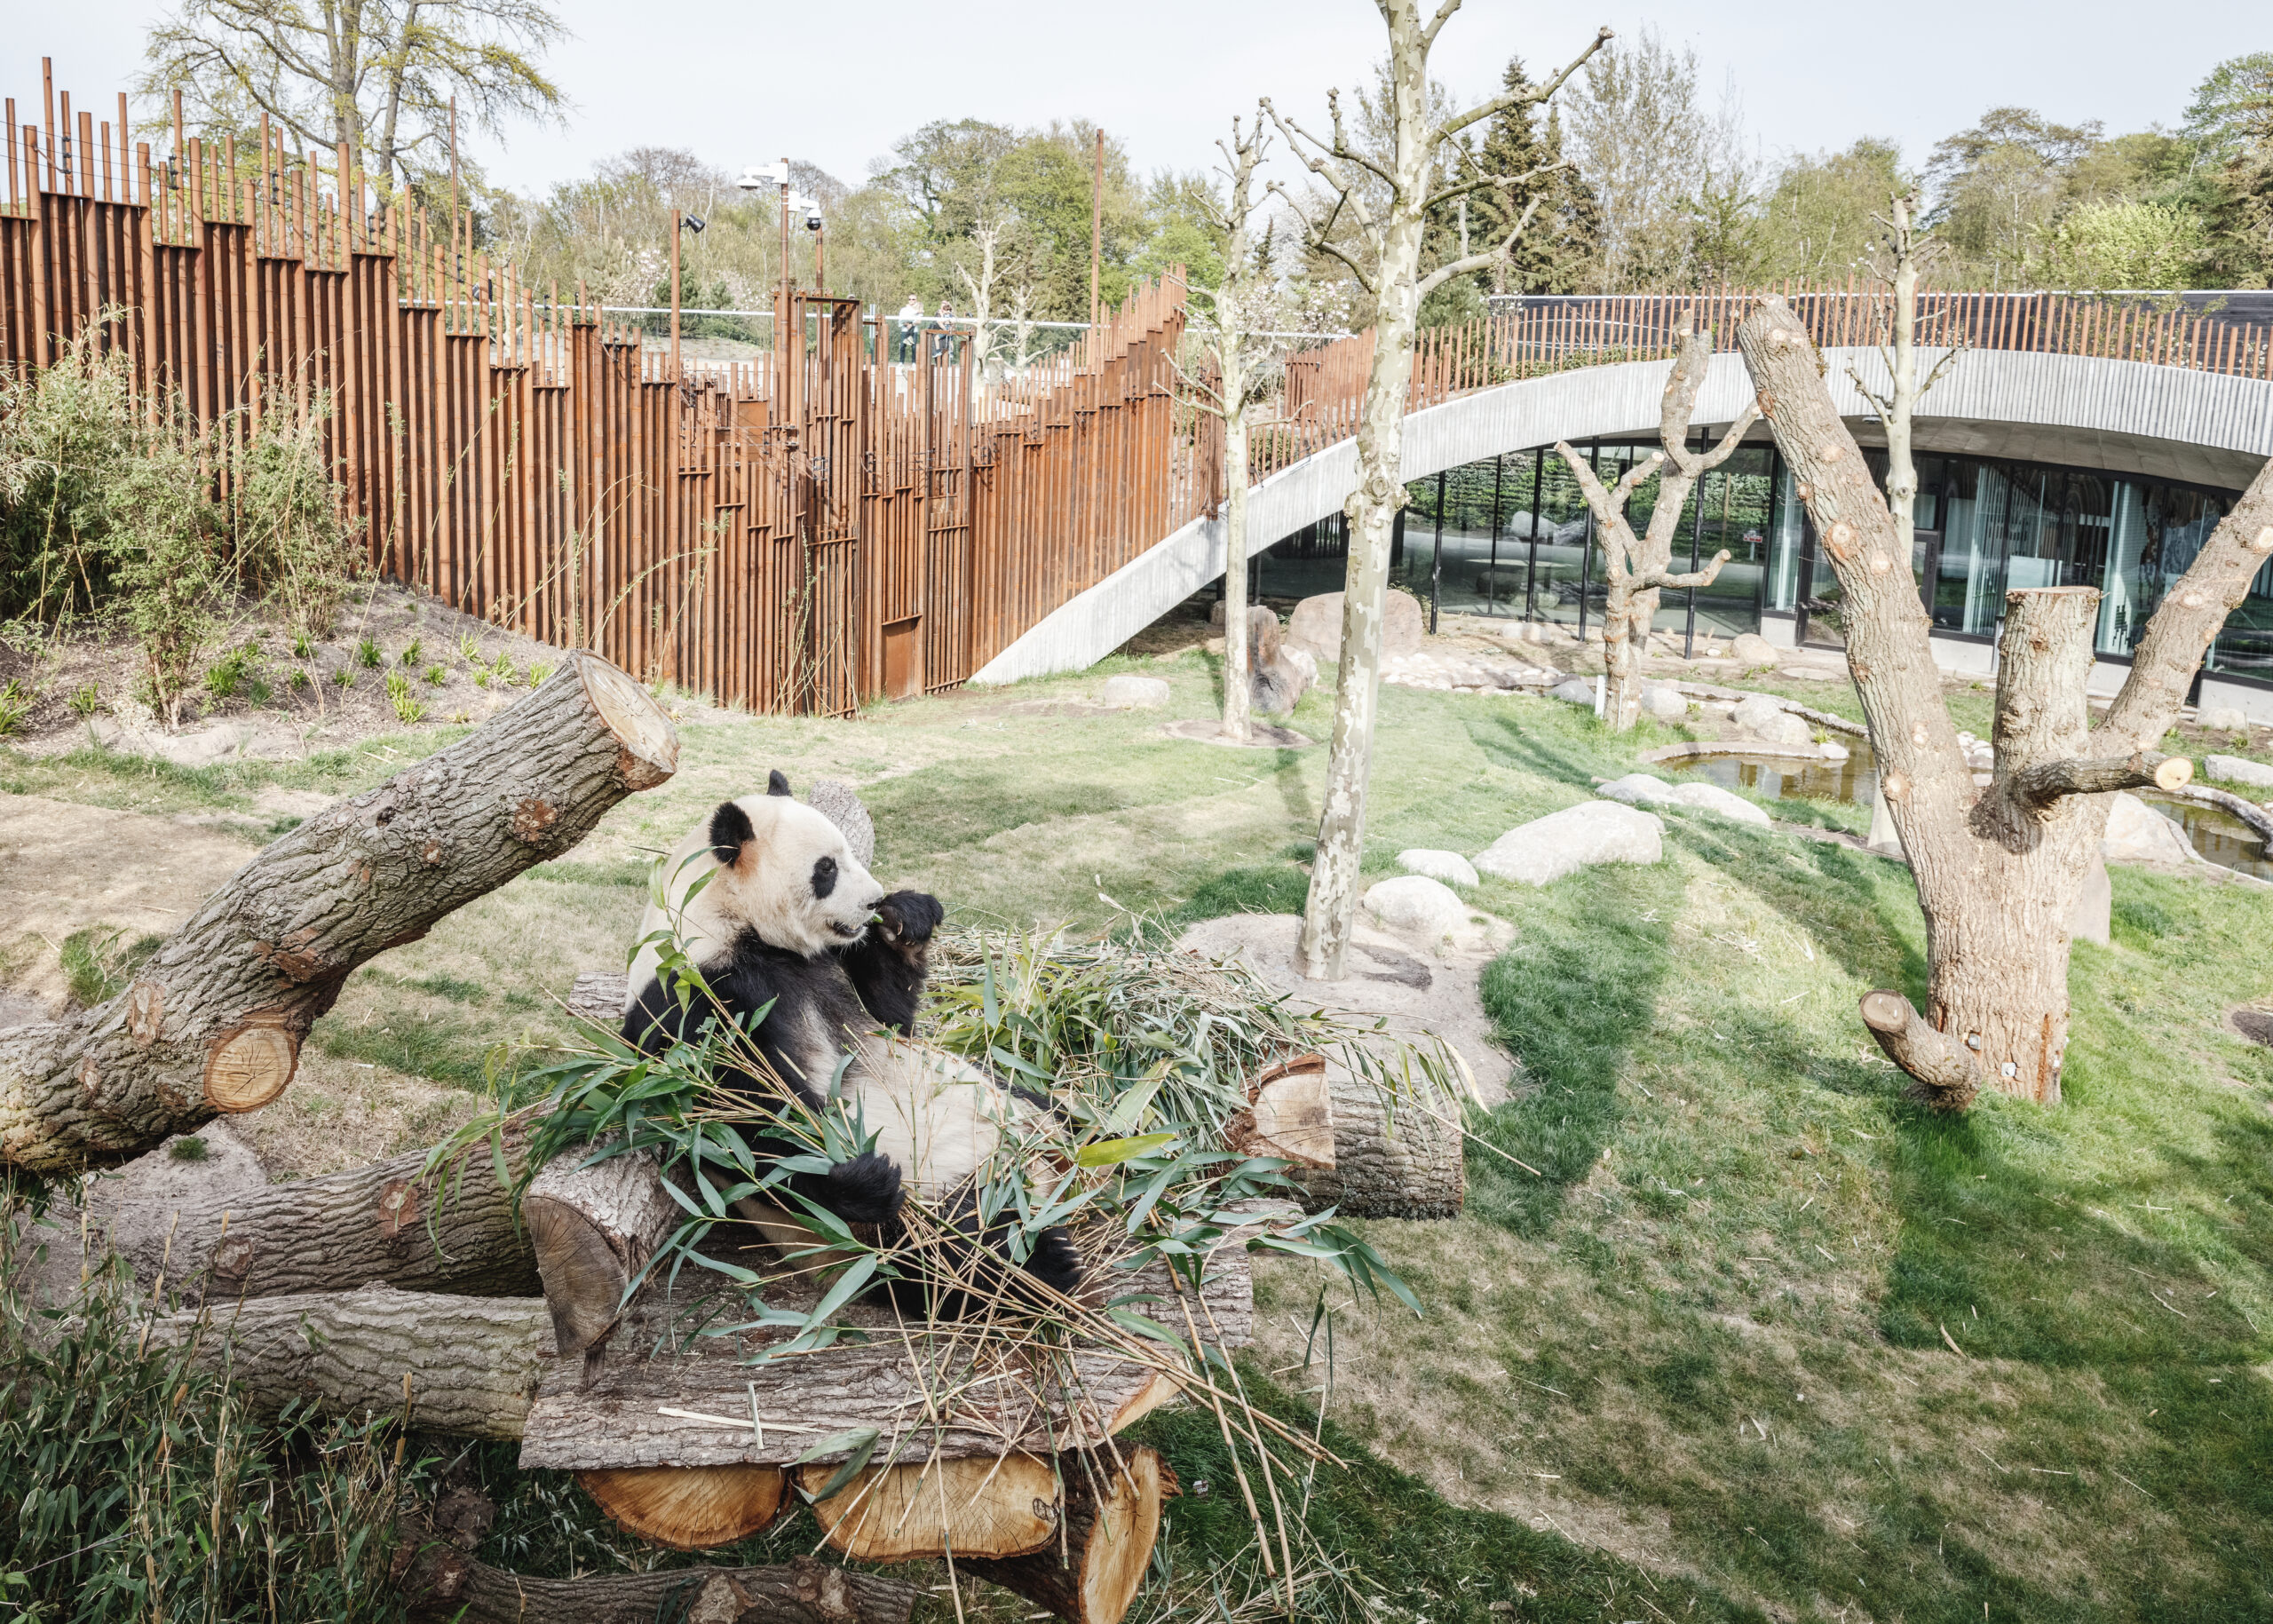 Panda House in Copenhagen Zoo